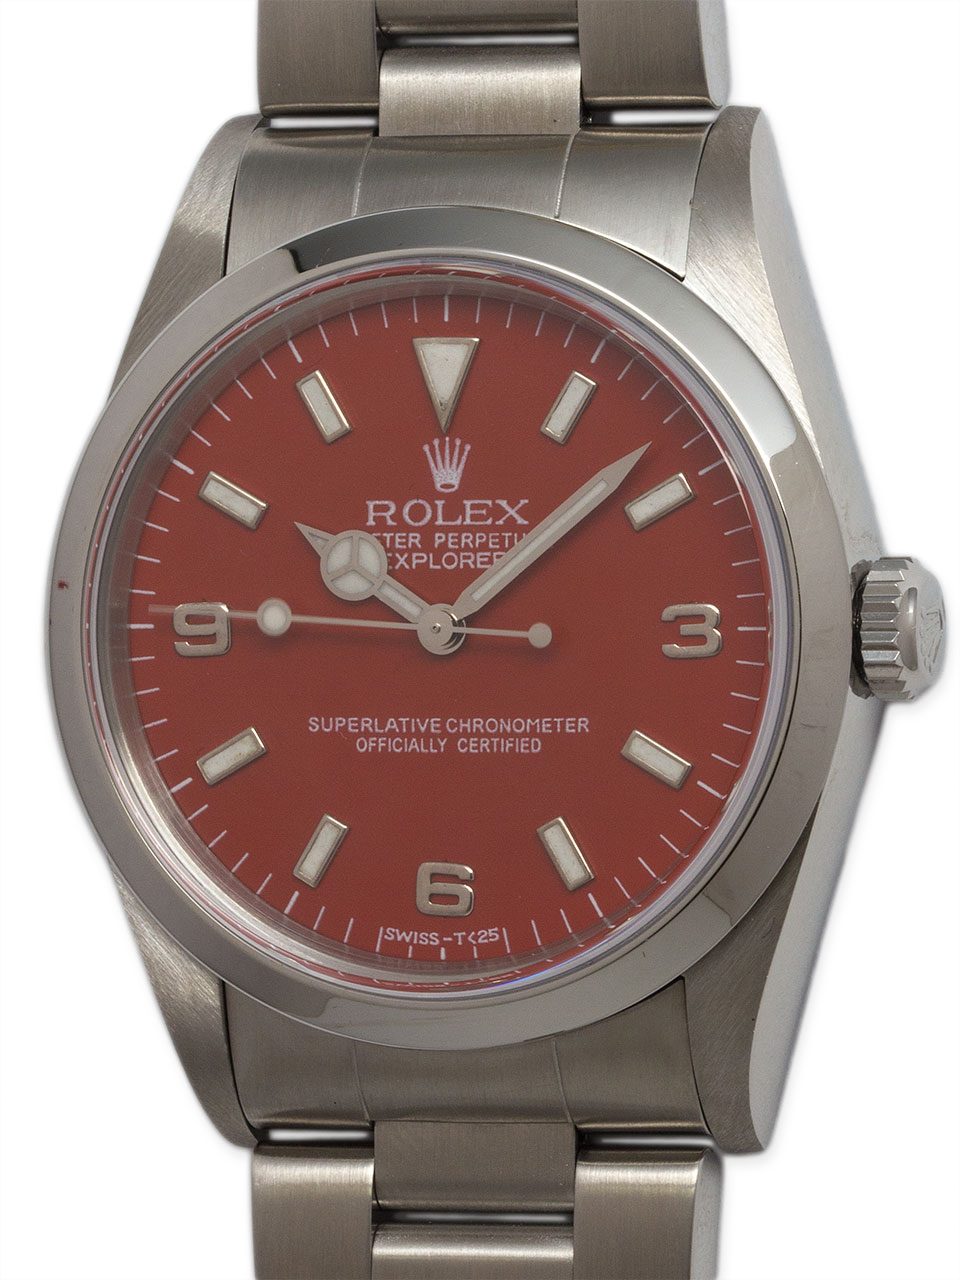 Rolex SS Explorer 1 ref 14270 circa 1998 Apple Red